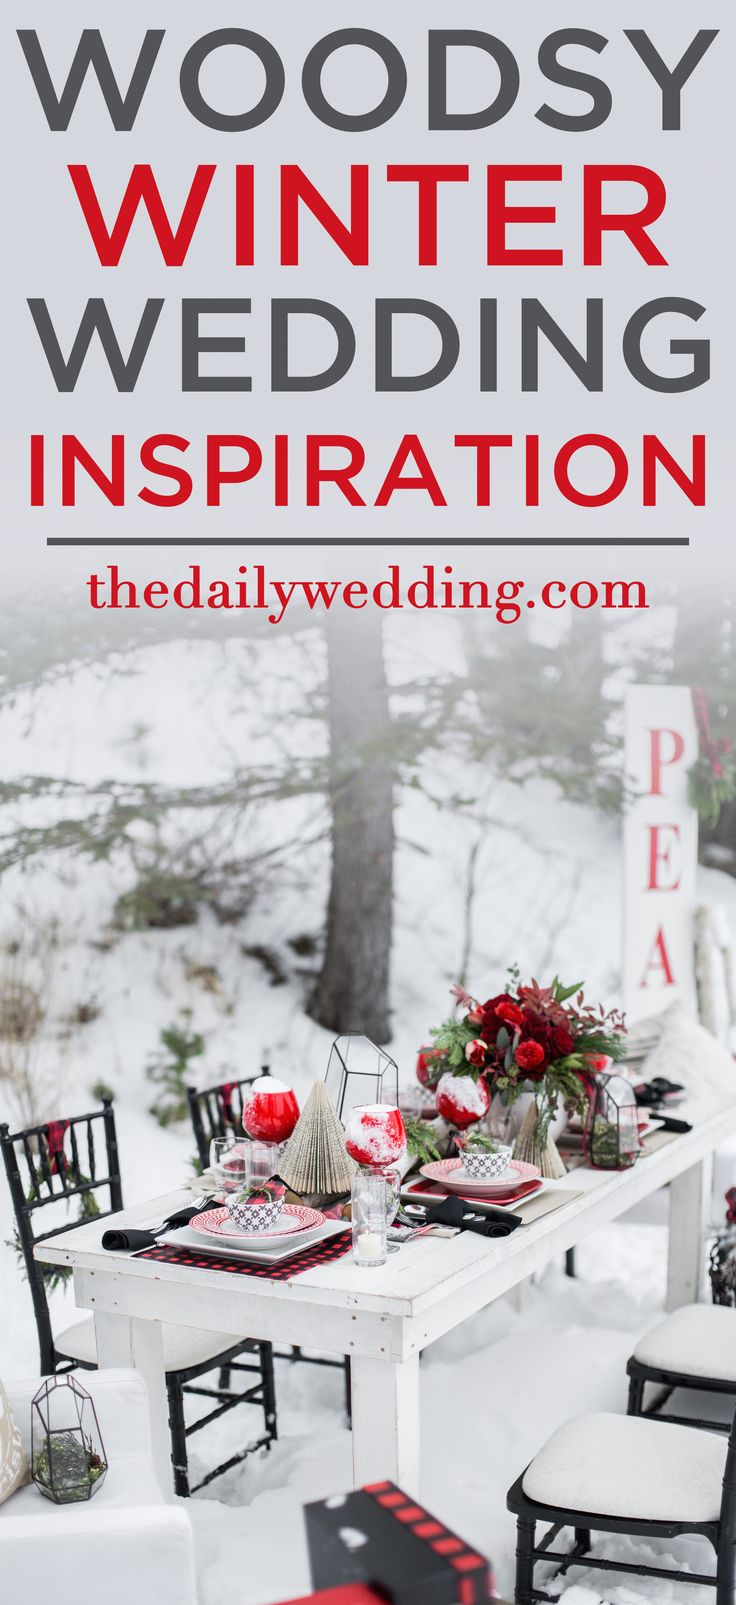 So in love! View the full wedding here: http://thedailywedding.com/2015/12/20/woodsy-winter-wedding-inspiration/